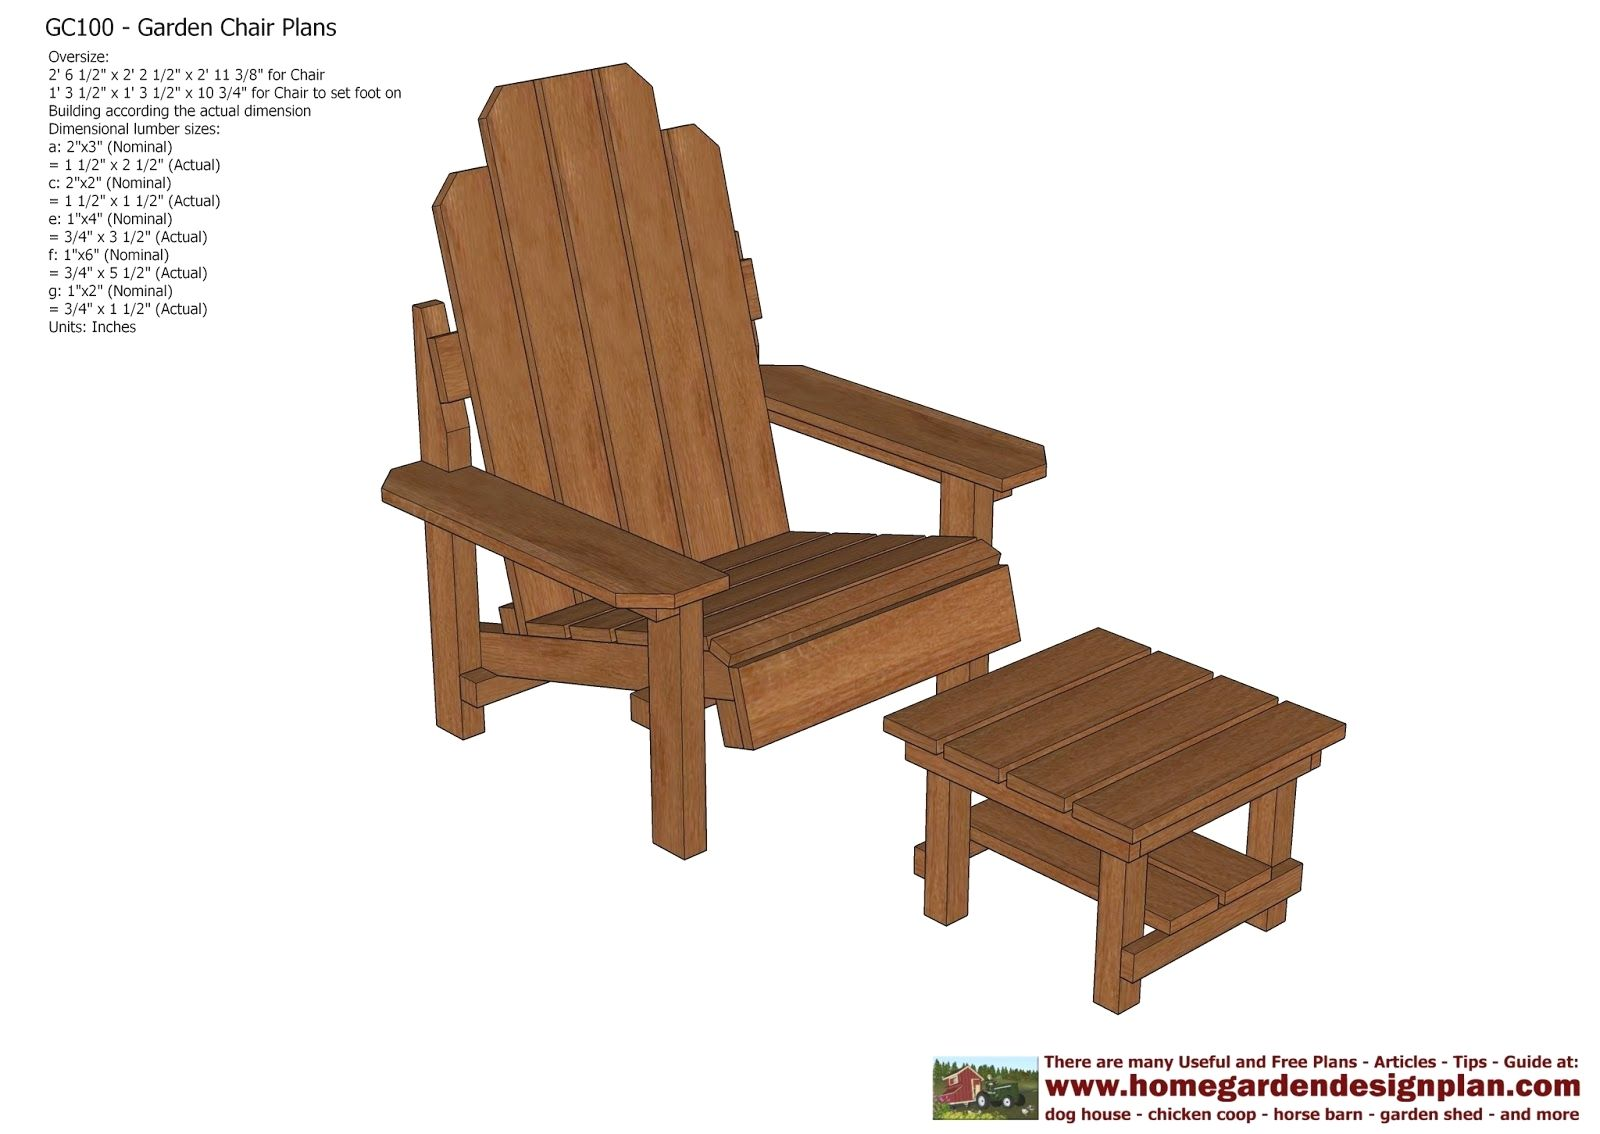 Garden Chair Plans Out Door Furniture Plans Woodworking